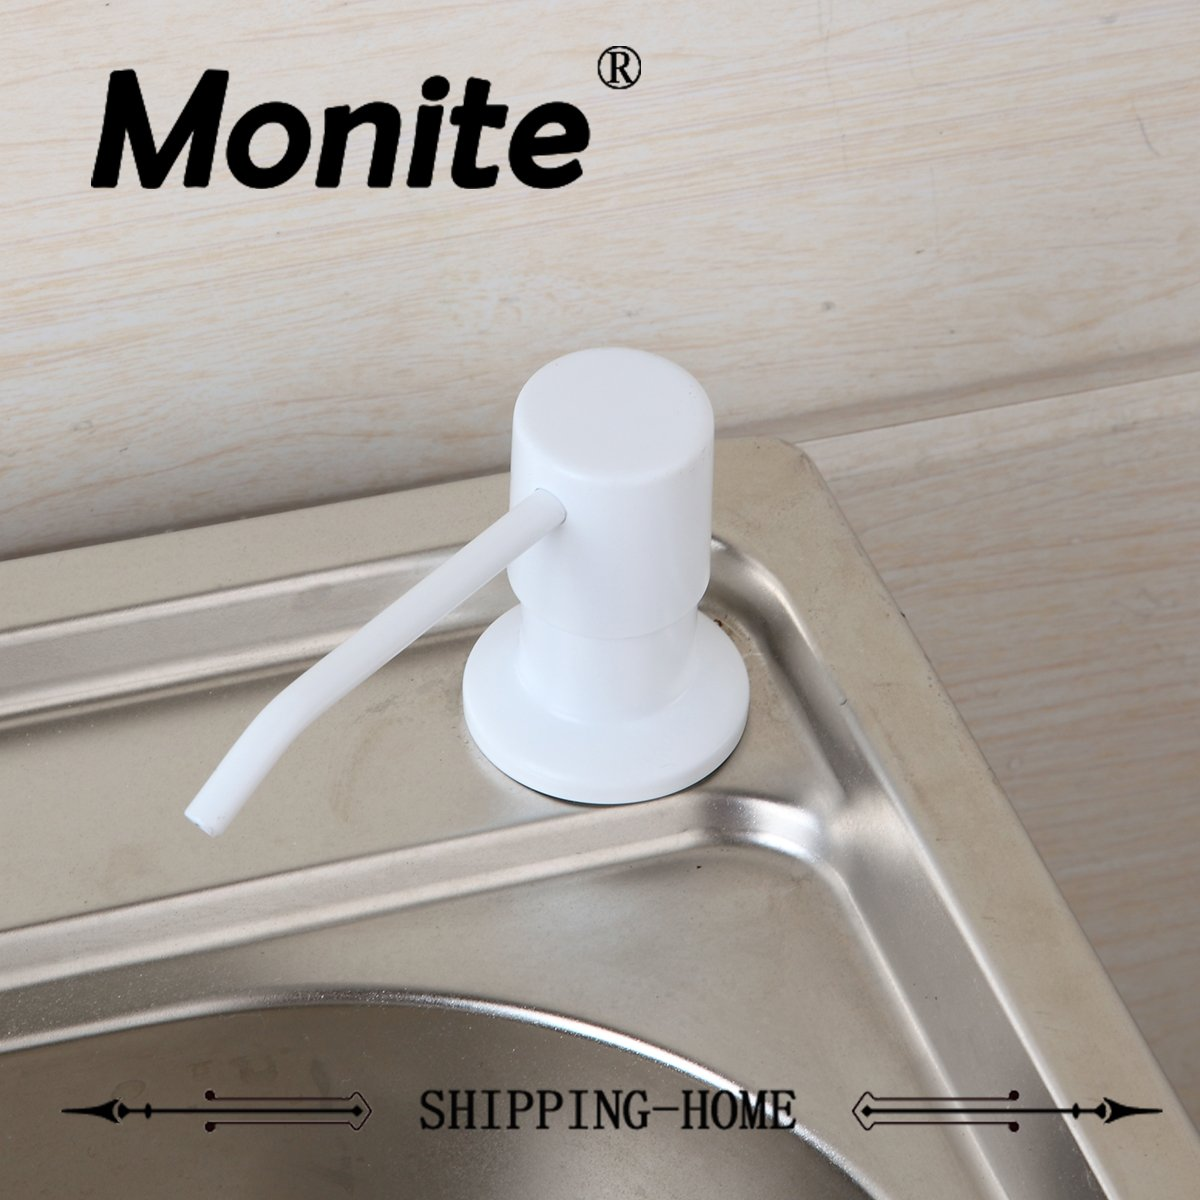 Buy Monite White Soap Dispenser Kitchen Bathroom Sink Faucet Shampoo